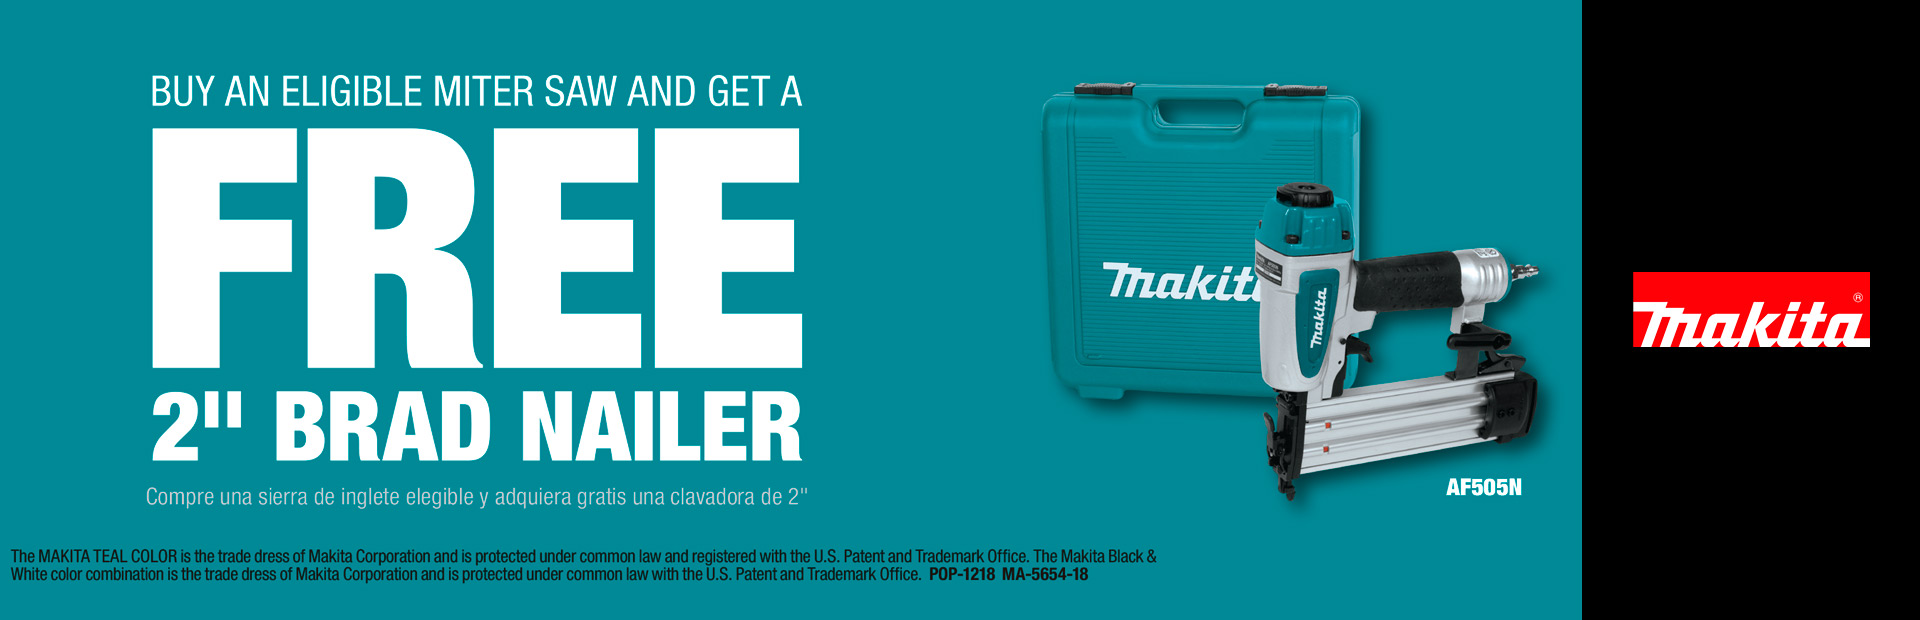 "Makita: BUY A MITER SAW AND GET A FREE 2"" BRAD NAILER"